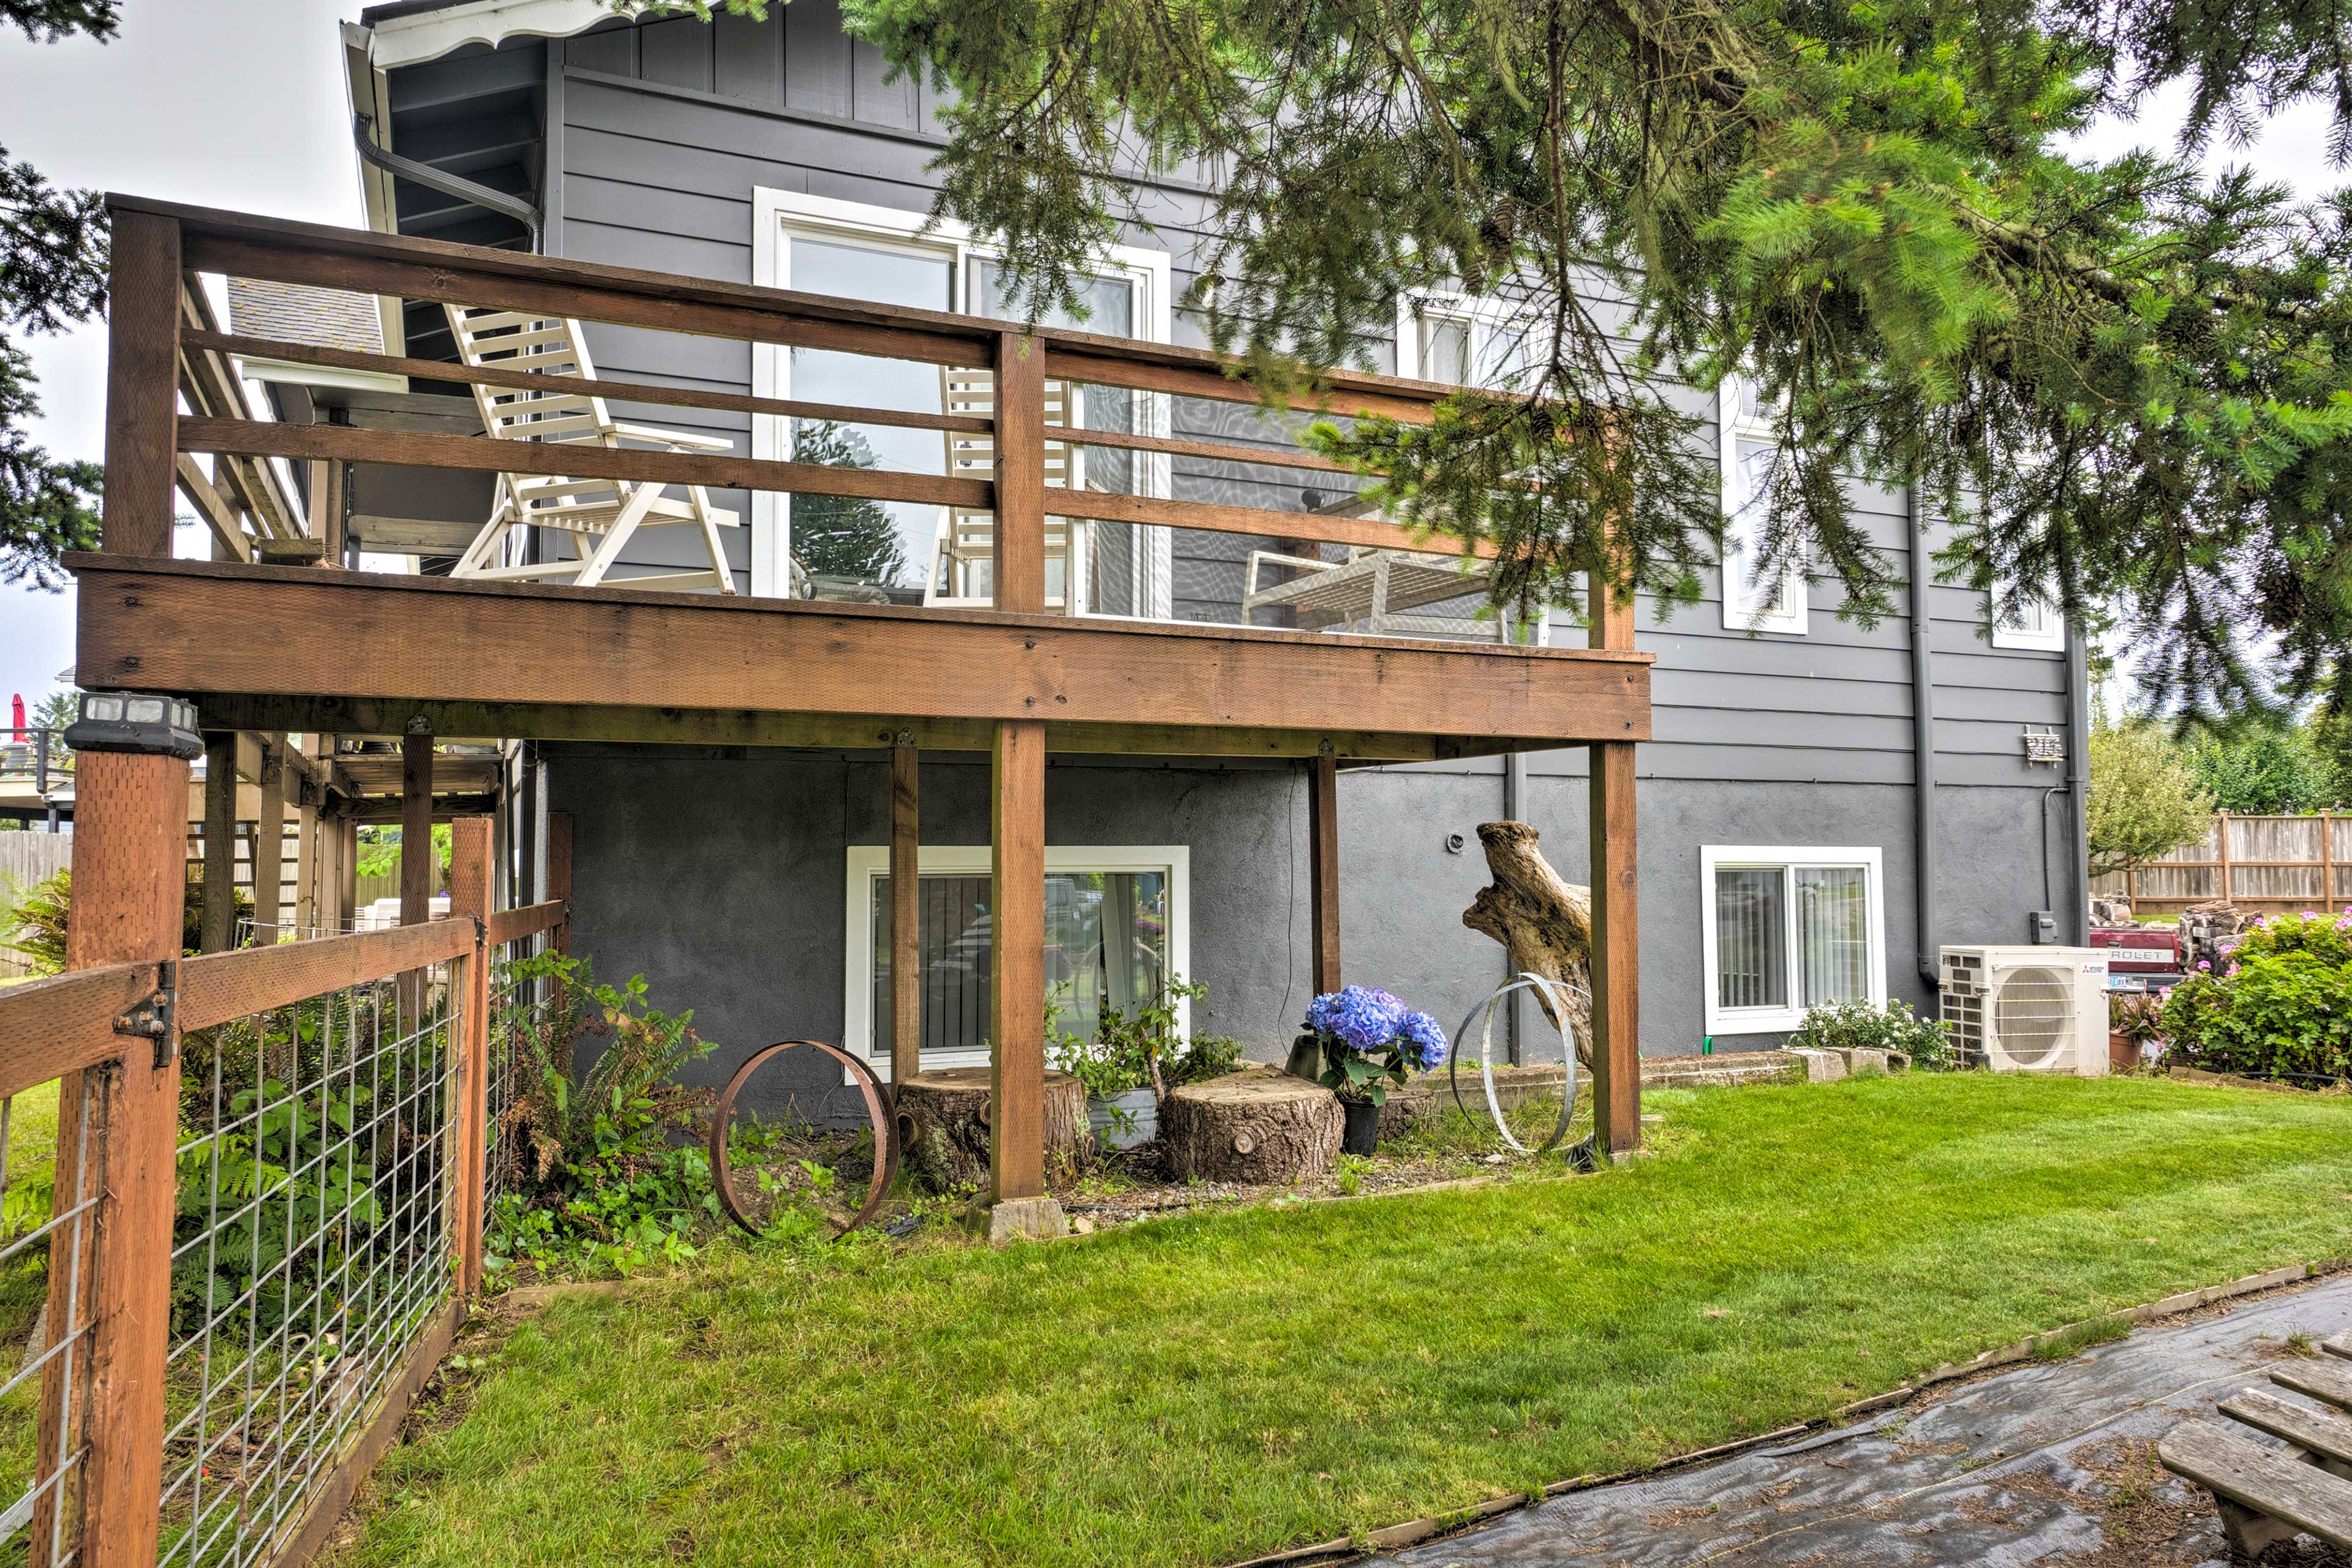 This quaint abode is situated just 2 blocks from the ocean!